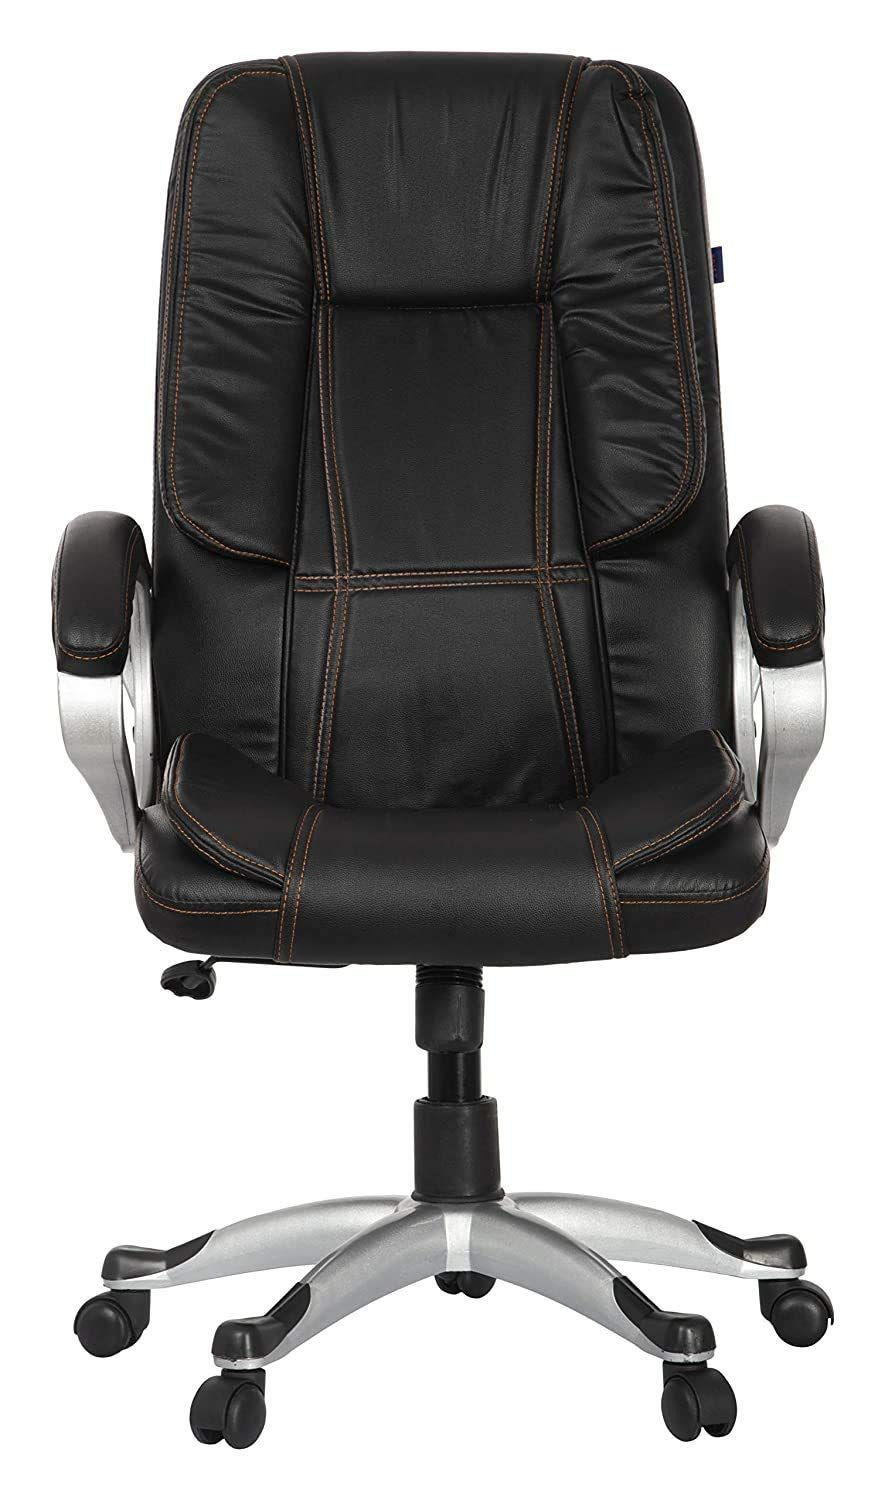 Townsville Moscow Leatherette High Back Office Chair Black Office Chair Chair Leatherette